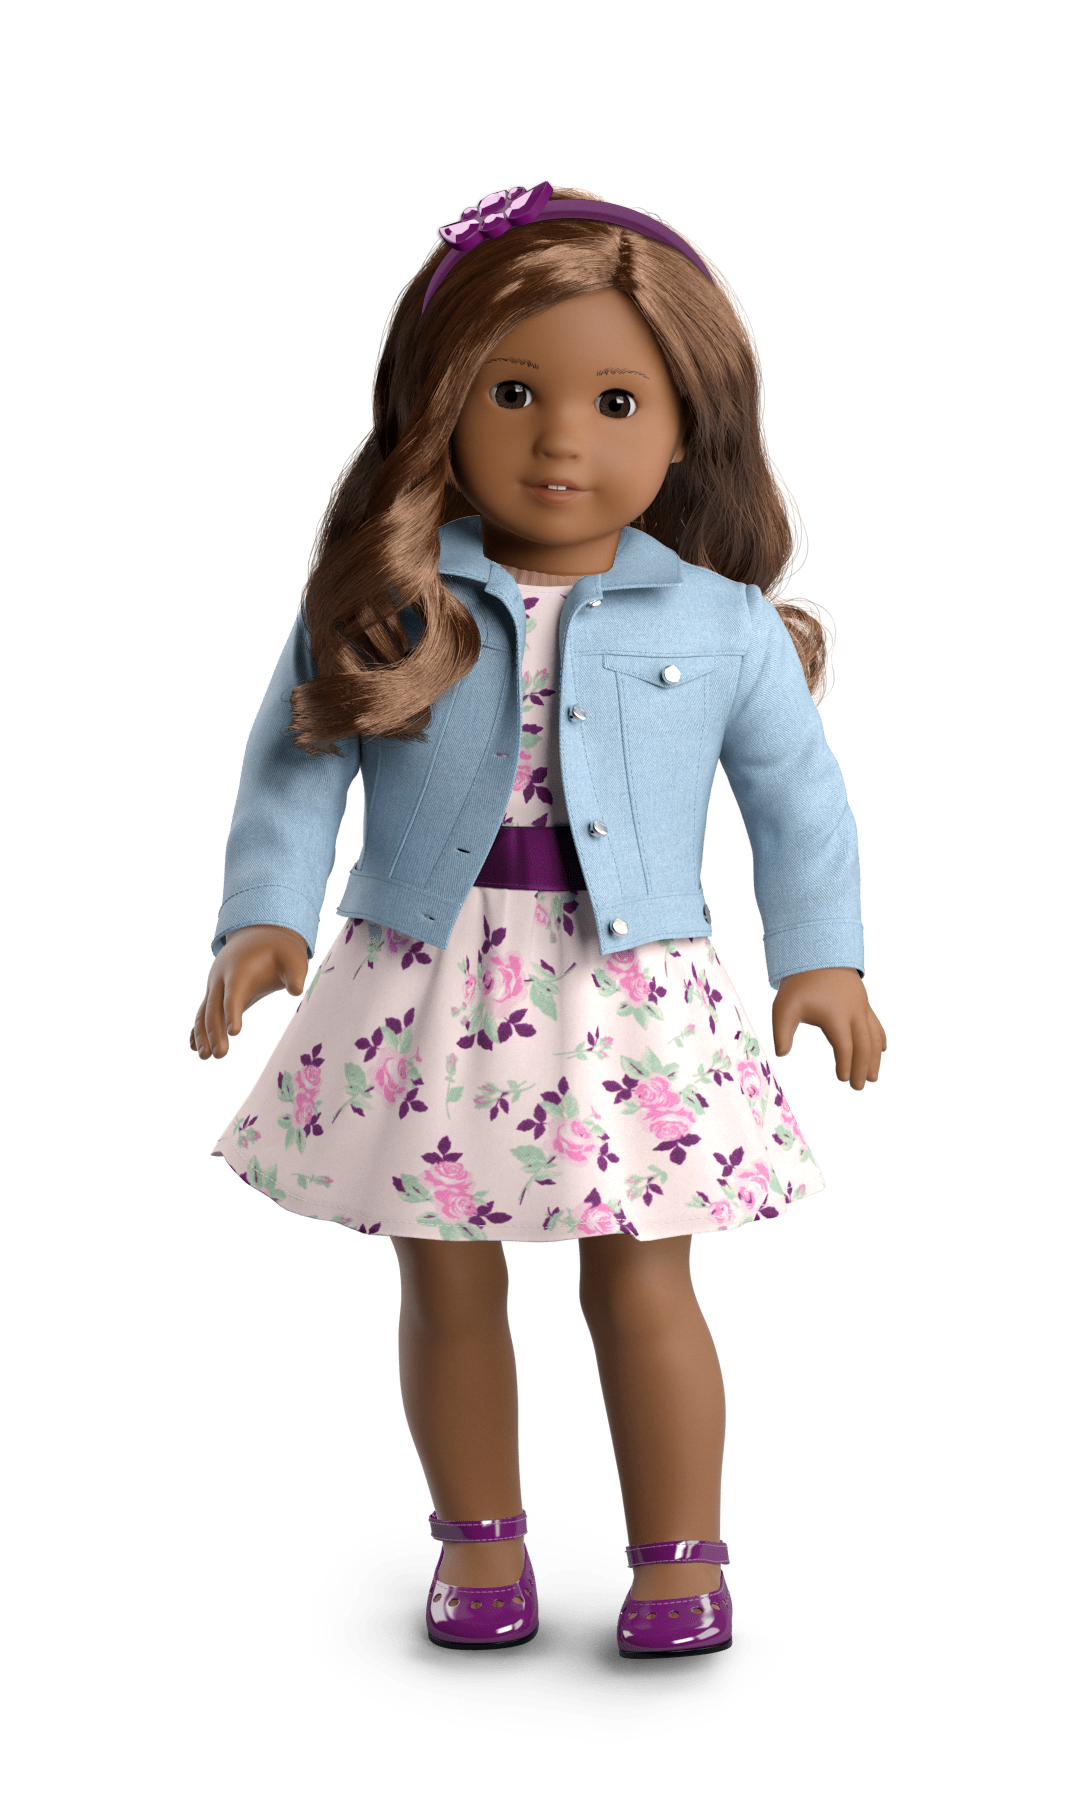 american girl create your own - Ameeican Girl Doll